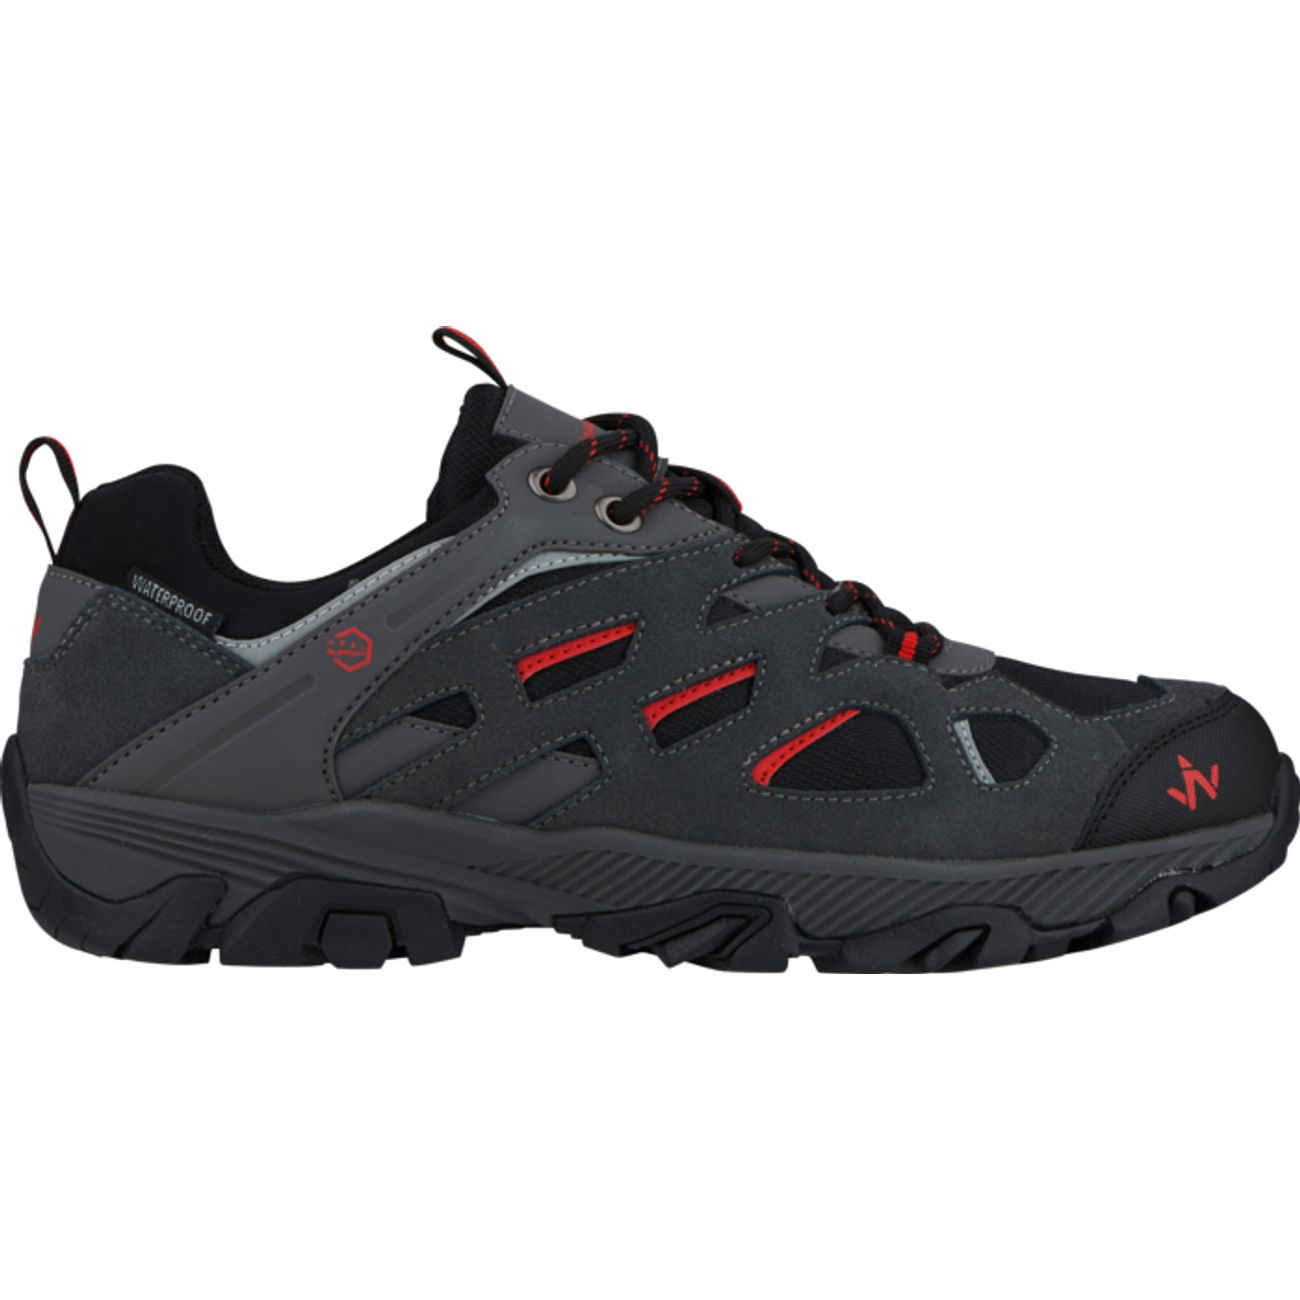 CHAUSSURES BASSES Randonnée homme WANABEE HIKE 300 LOW WP